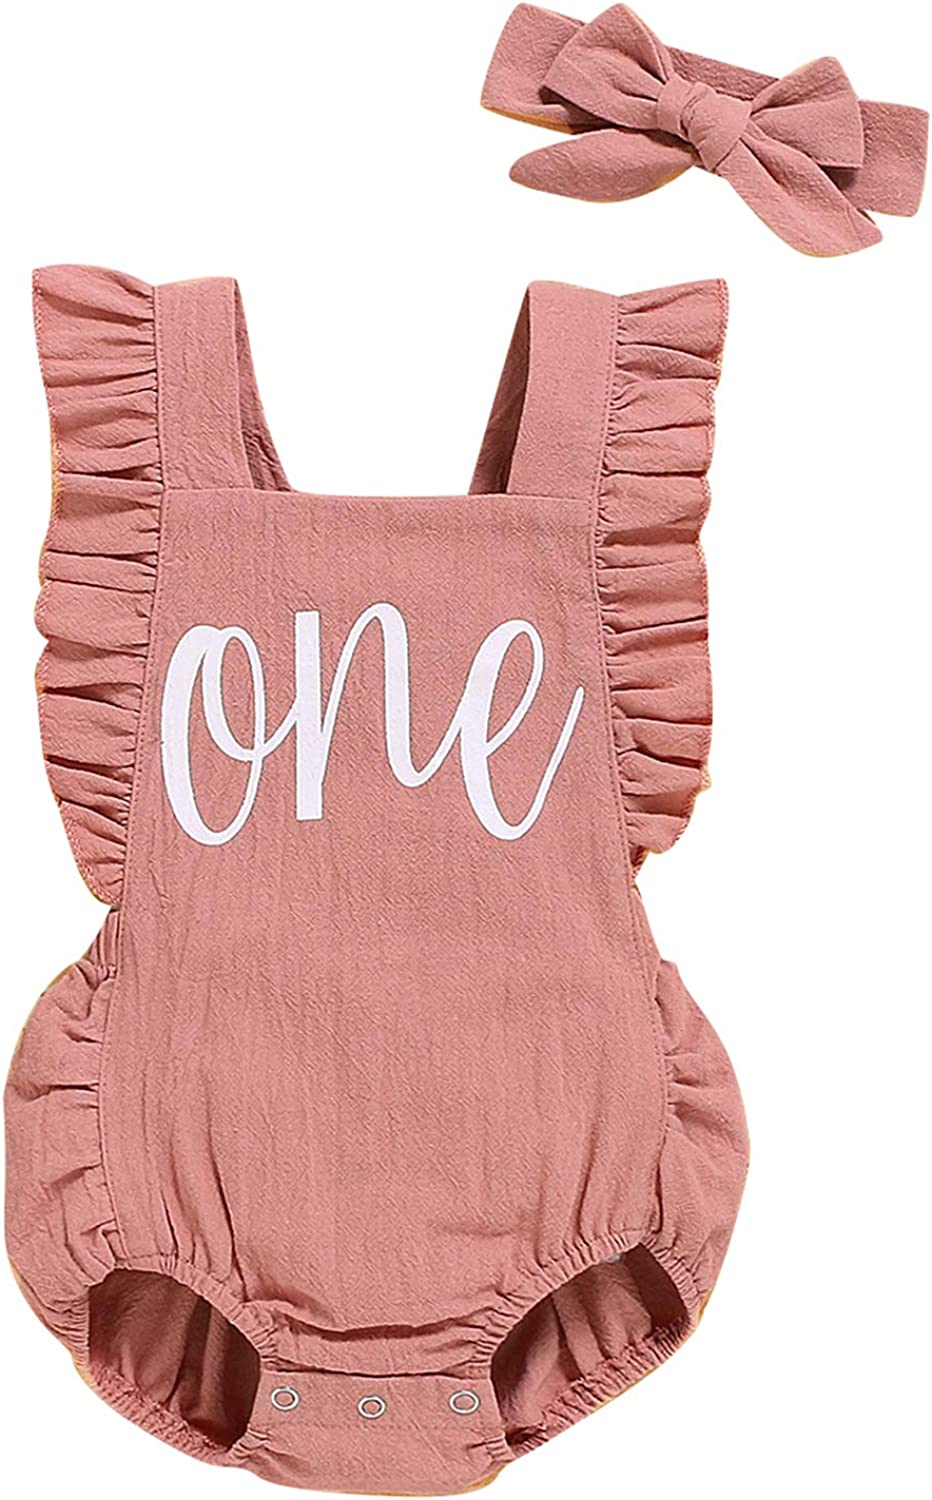 Shalofer Baby Girls One Year Old Birthday Romper Special Campaign C specialty shop Outfits First